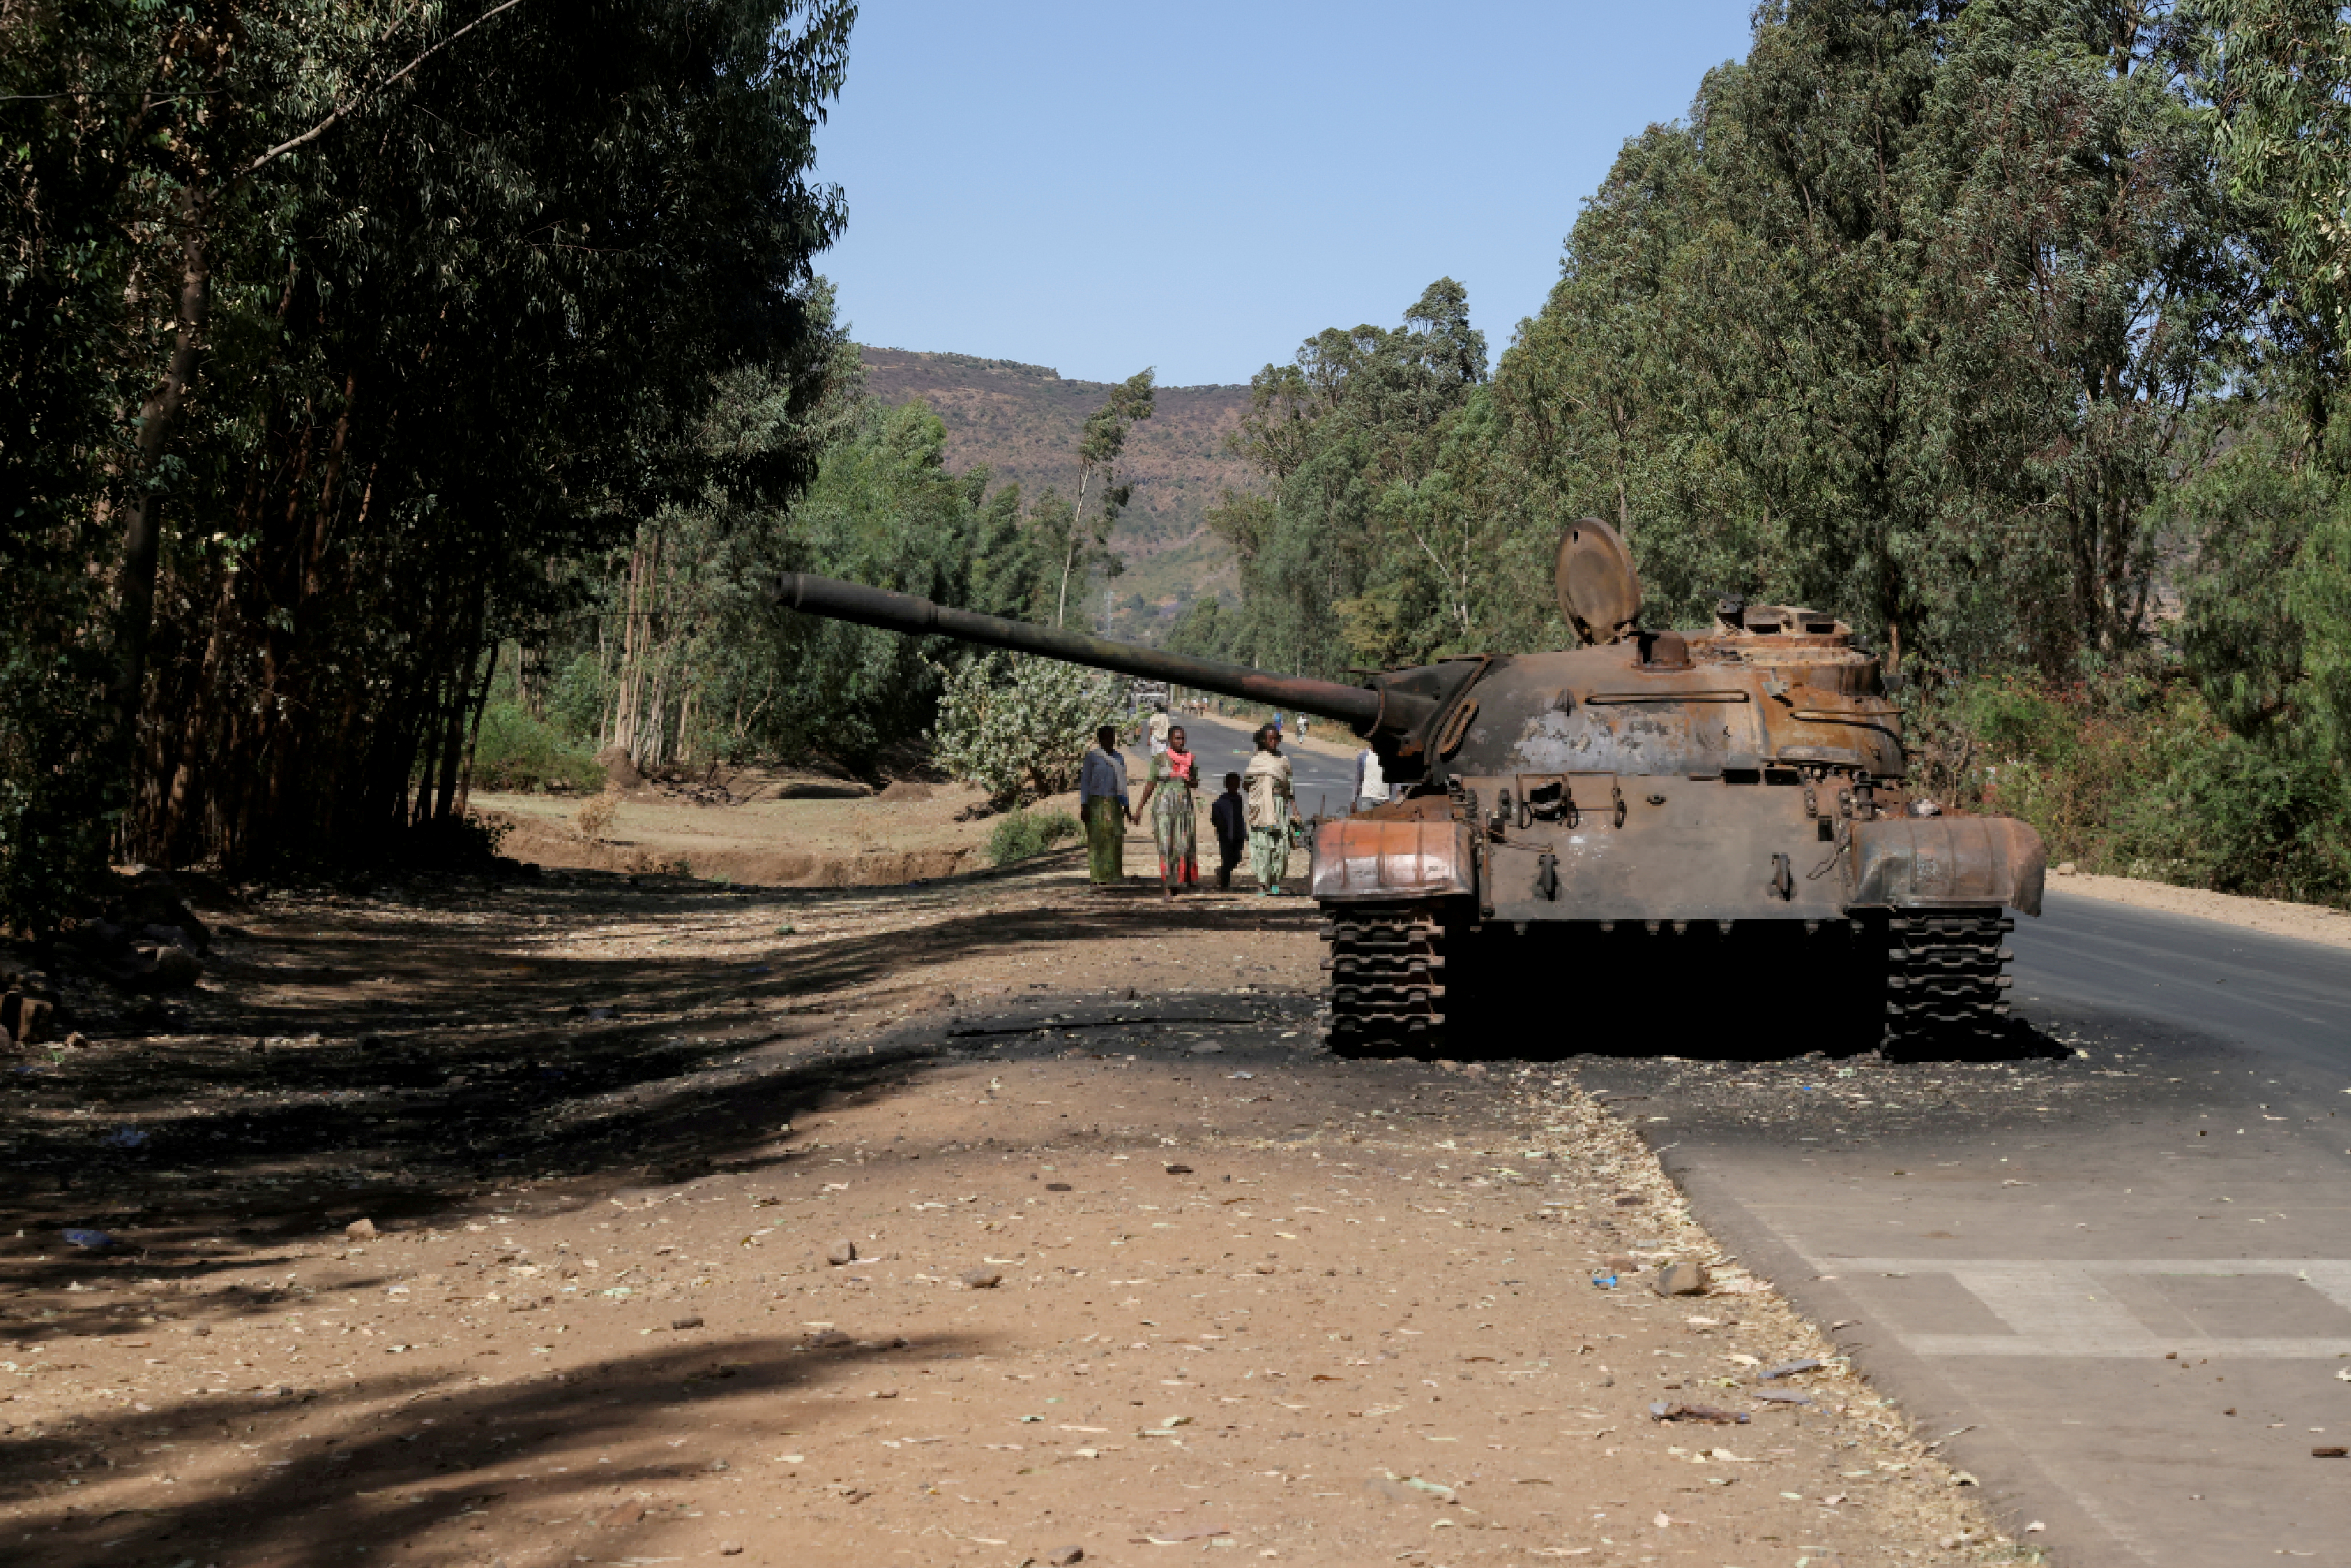 A burned tank stands near the town of Adwa, Tigray region, Ethiopia, March 18, 2021. REUTERS/Baz Ratner/File Photo